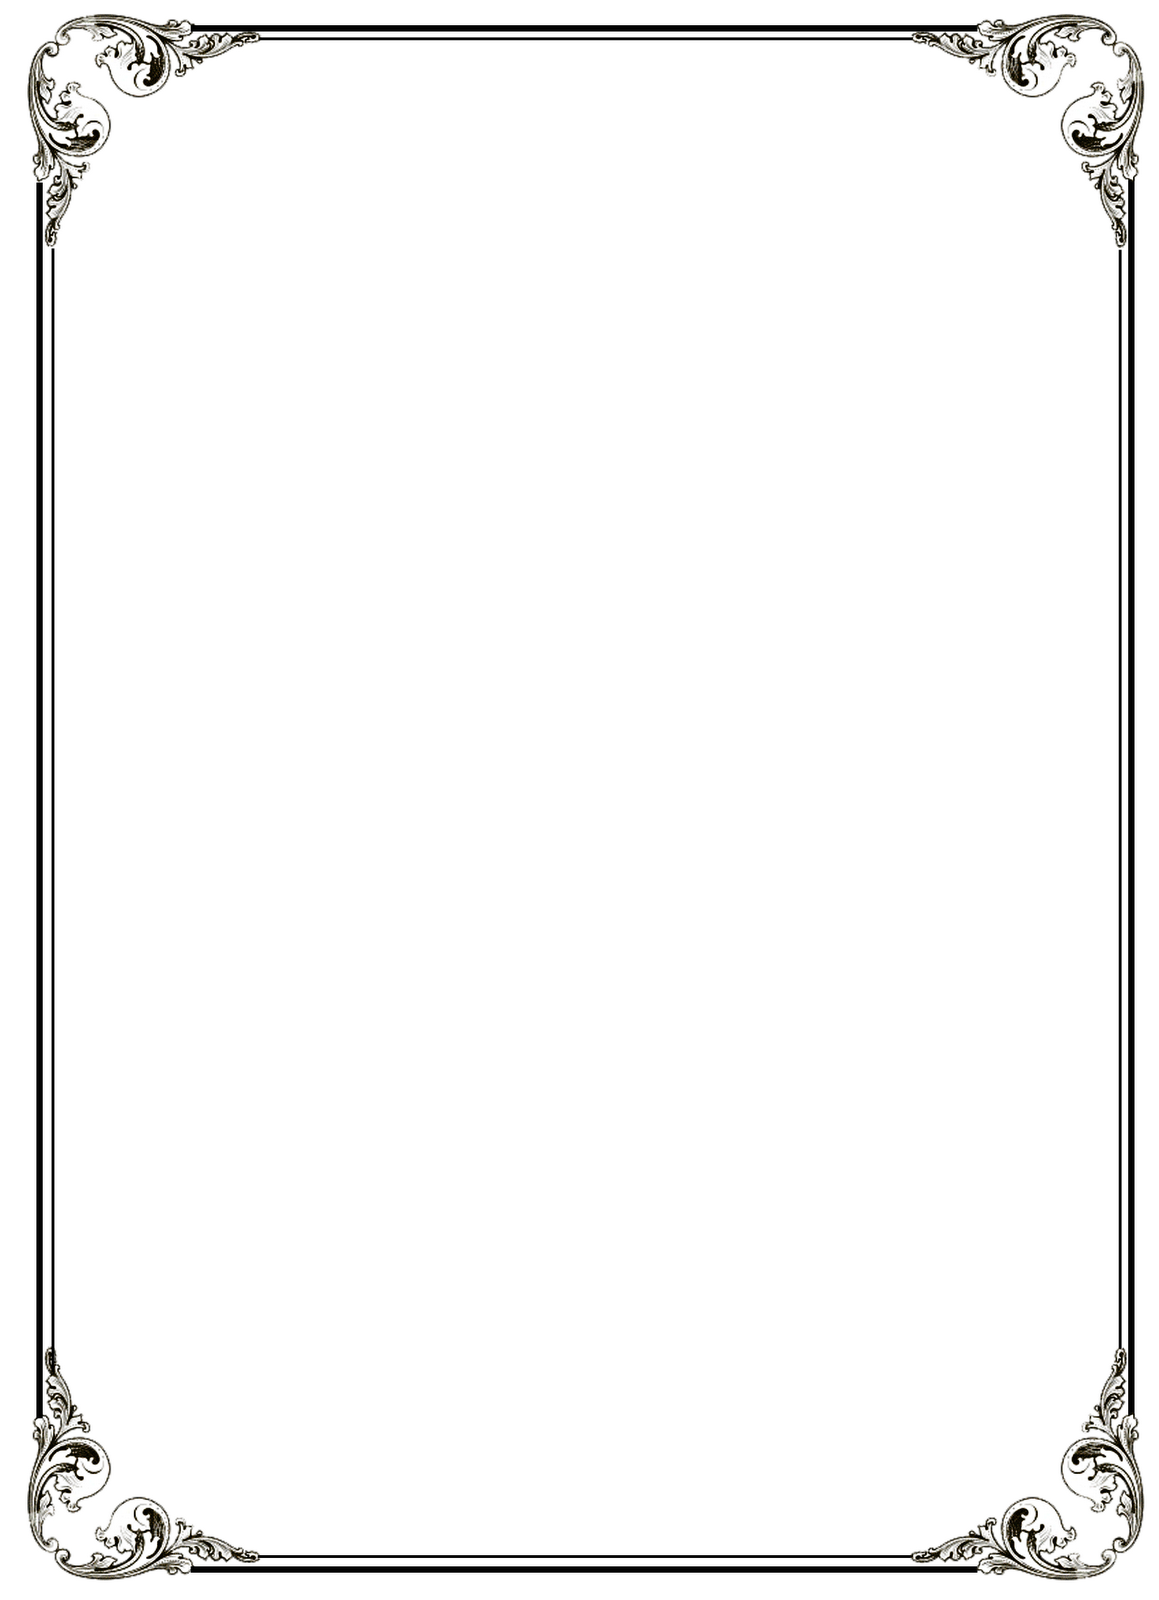 Free PNG Frames And Page Borders Transparent Frames And Page Borders ...